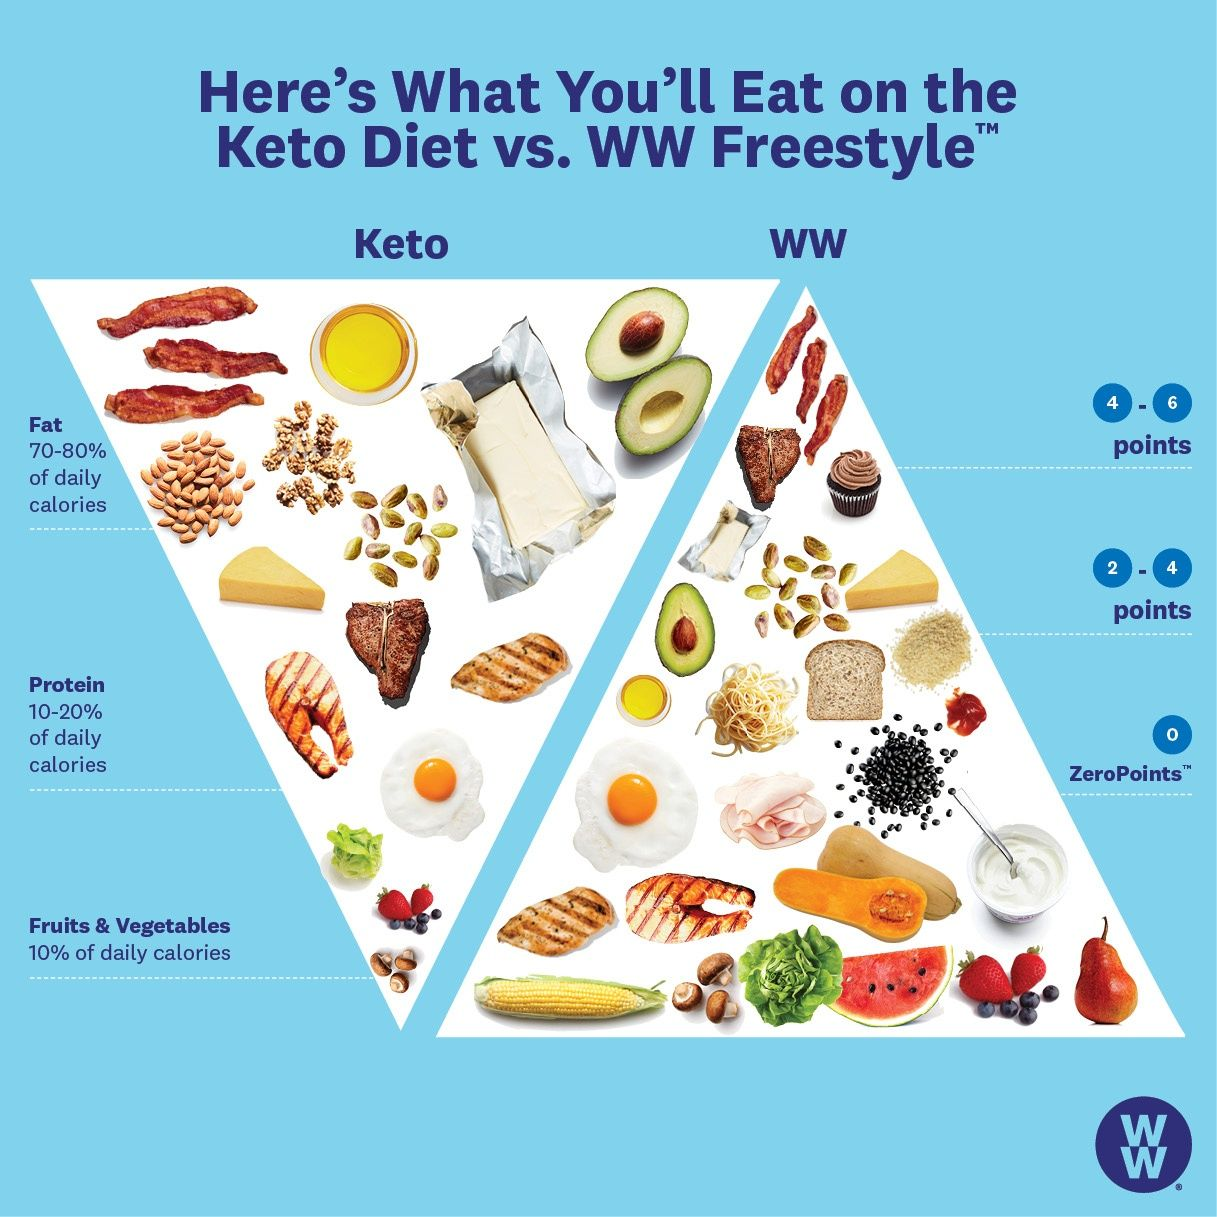 keto vs ww diet